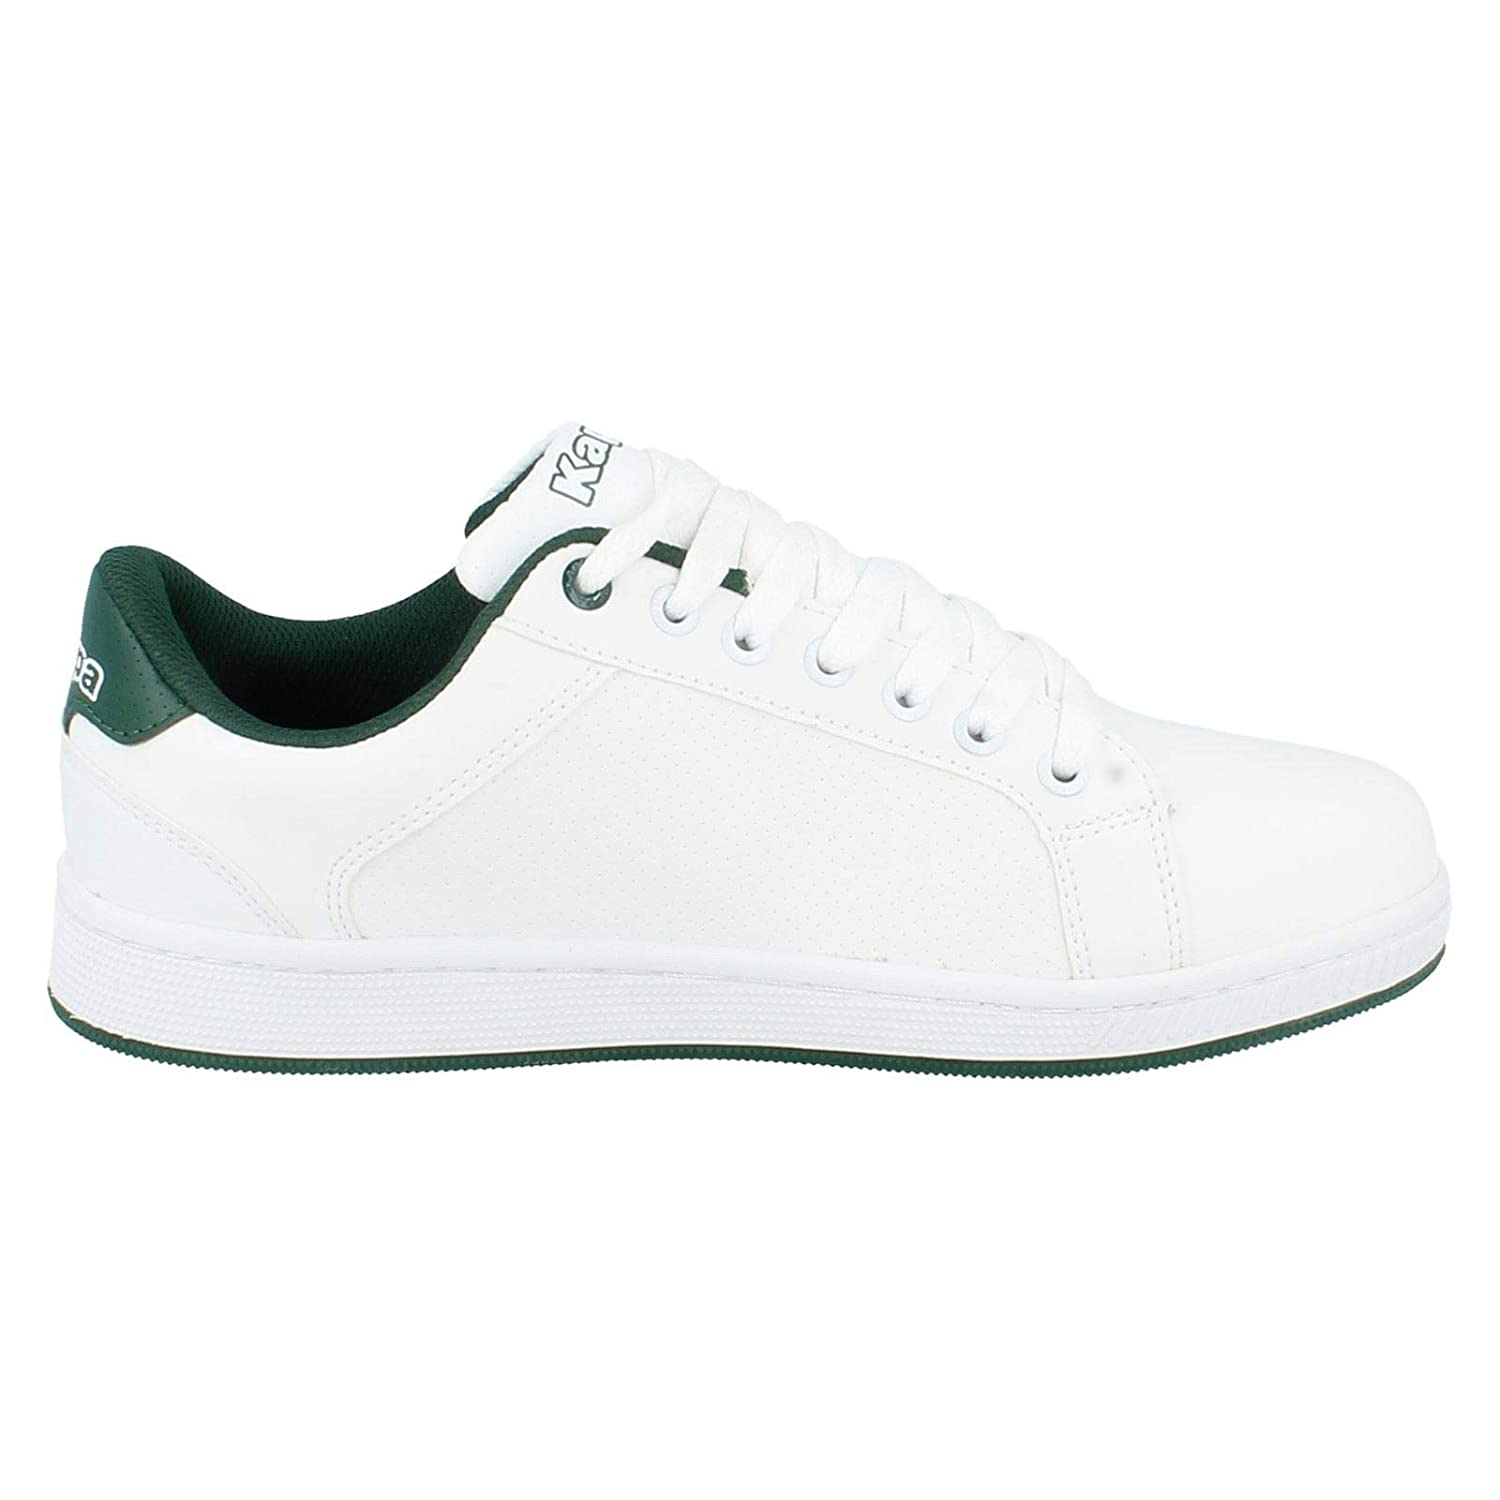 33b2e3ab55 Kappa Mens Trainers Maresas Tennis Lace White/Green Size 10: Amazon.co.uk:  Shoes & Bags